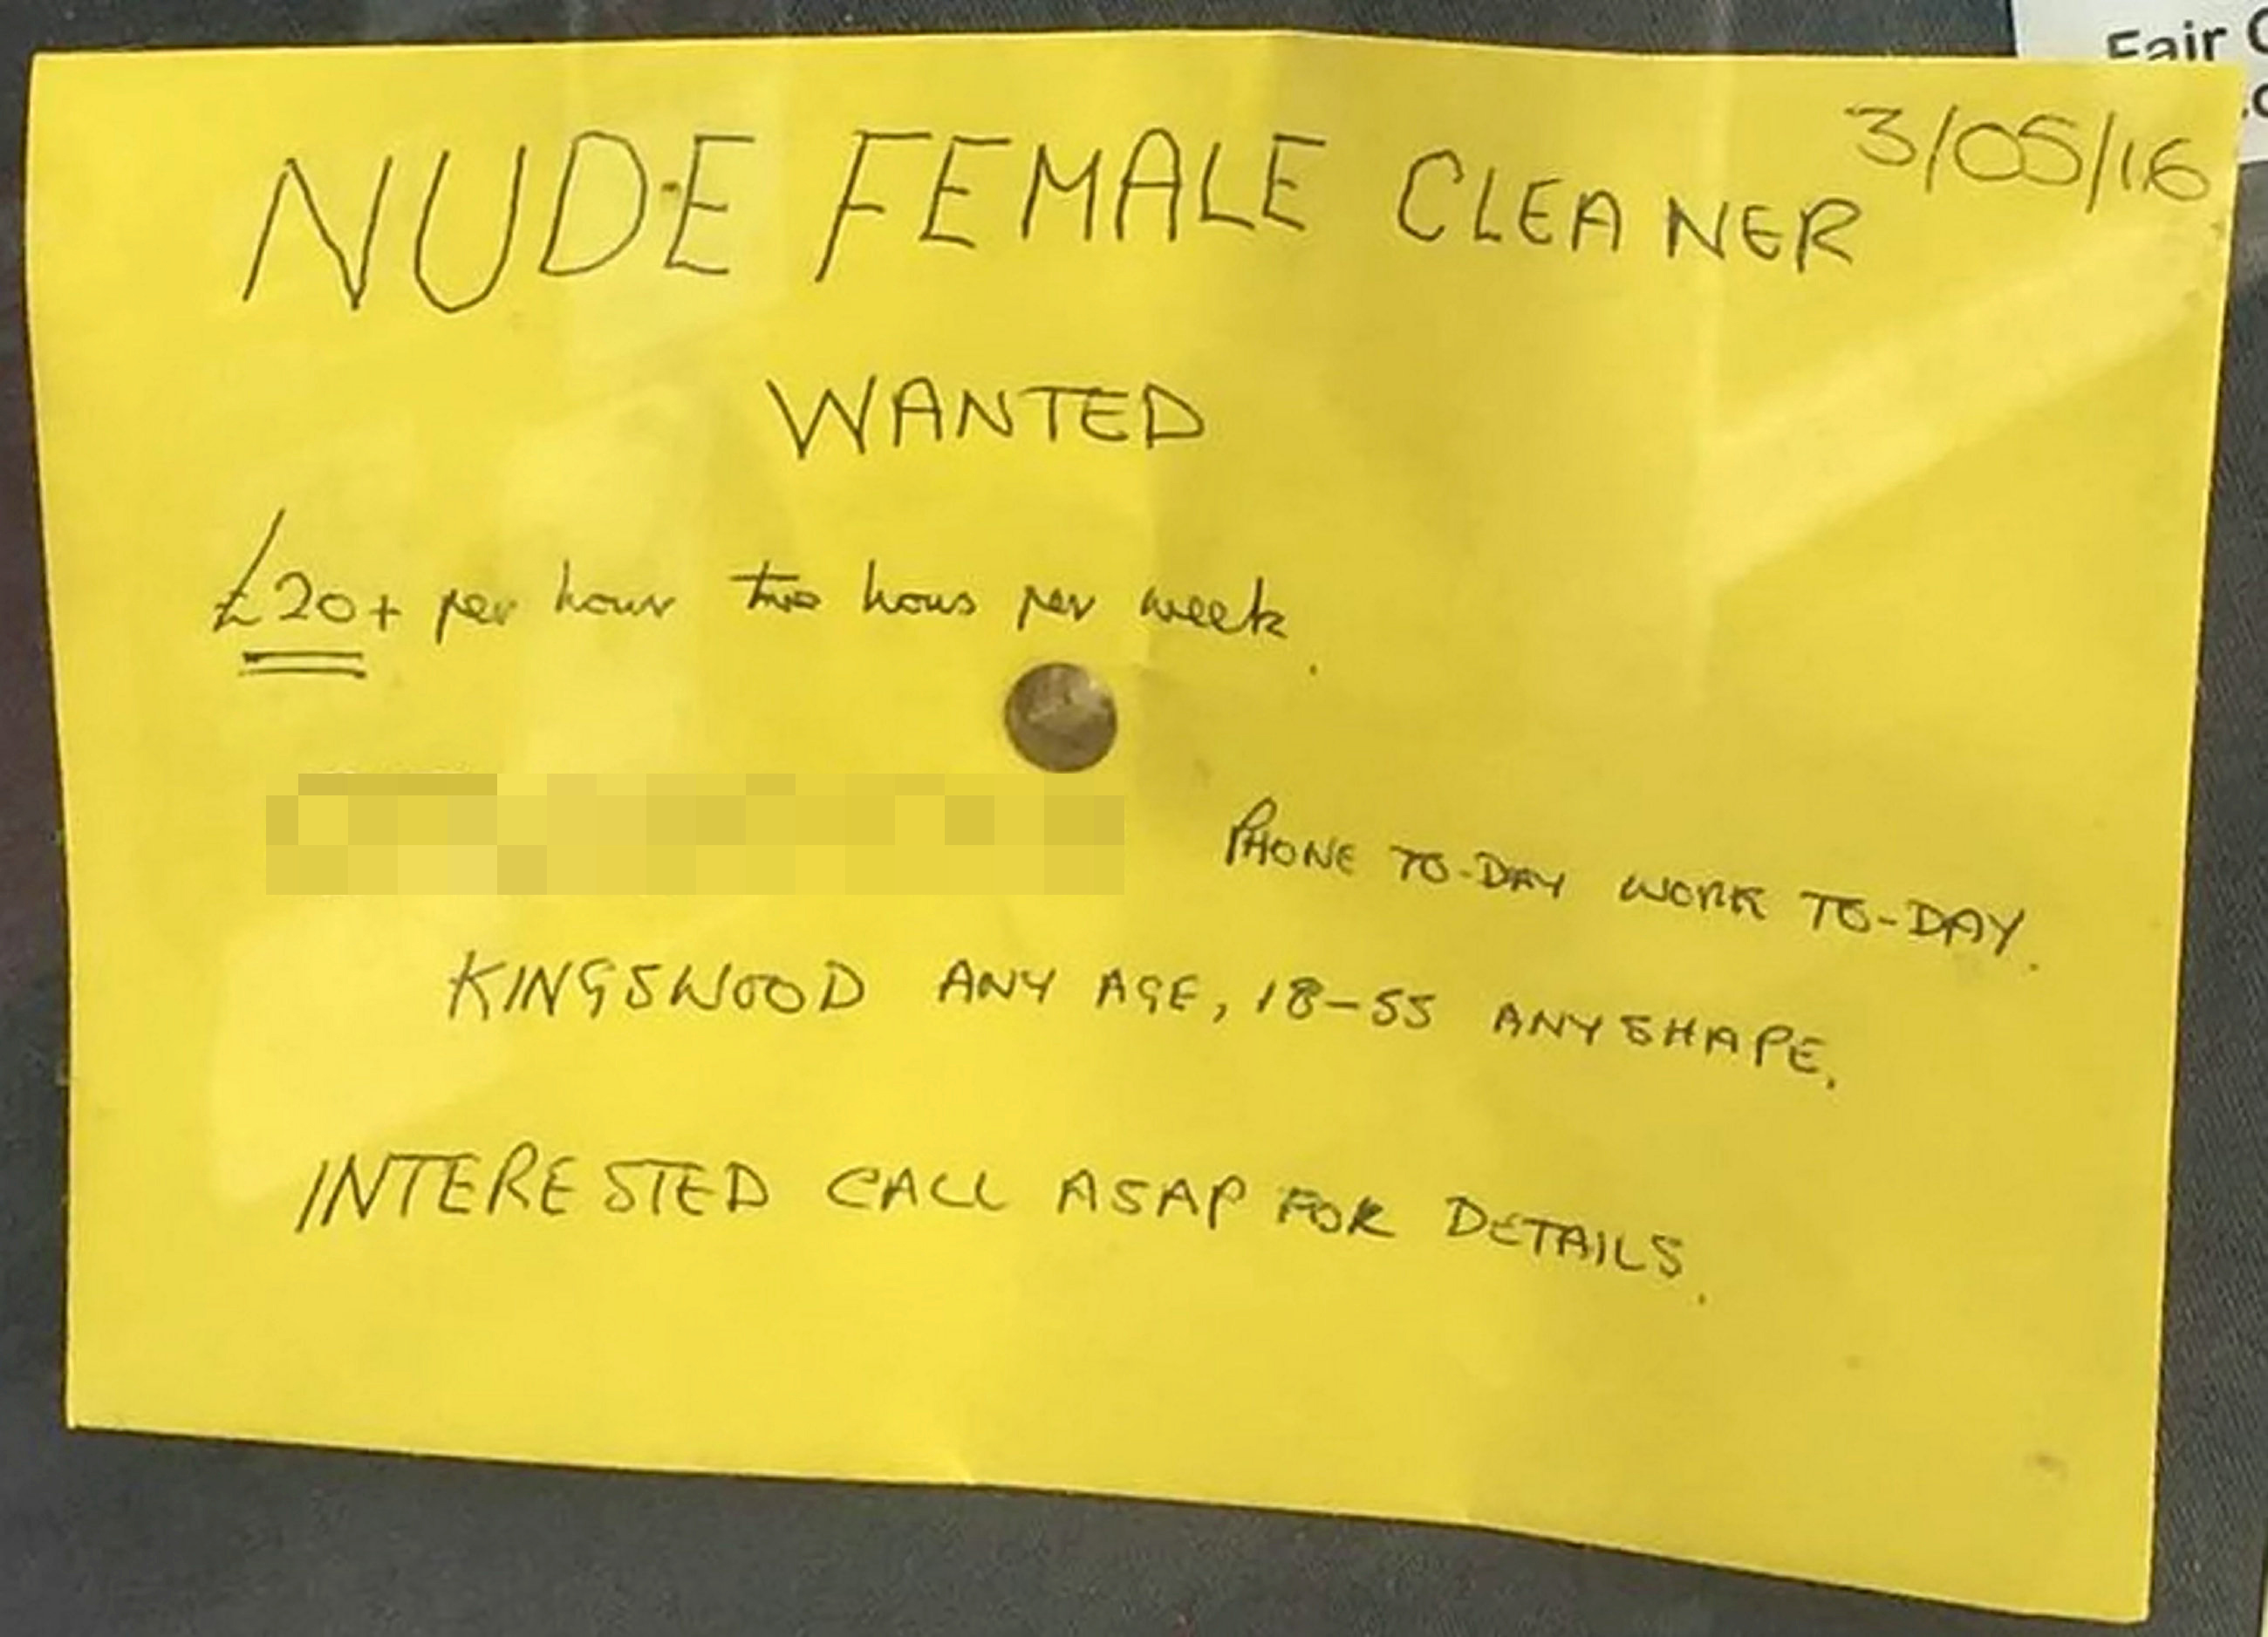 Man, 70, Advertises For Nude Female Cleaner, Gets Incredible Response SWNS NUDE CLEANER 01 1